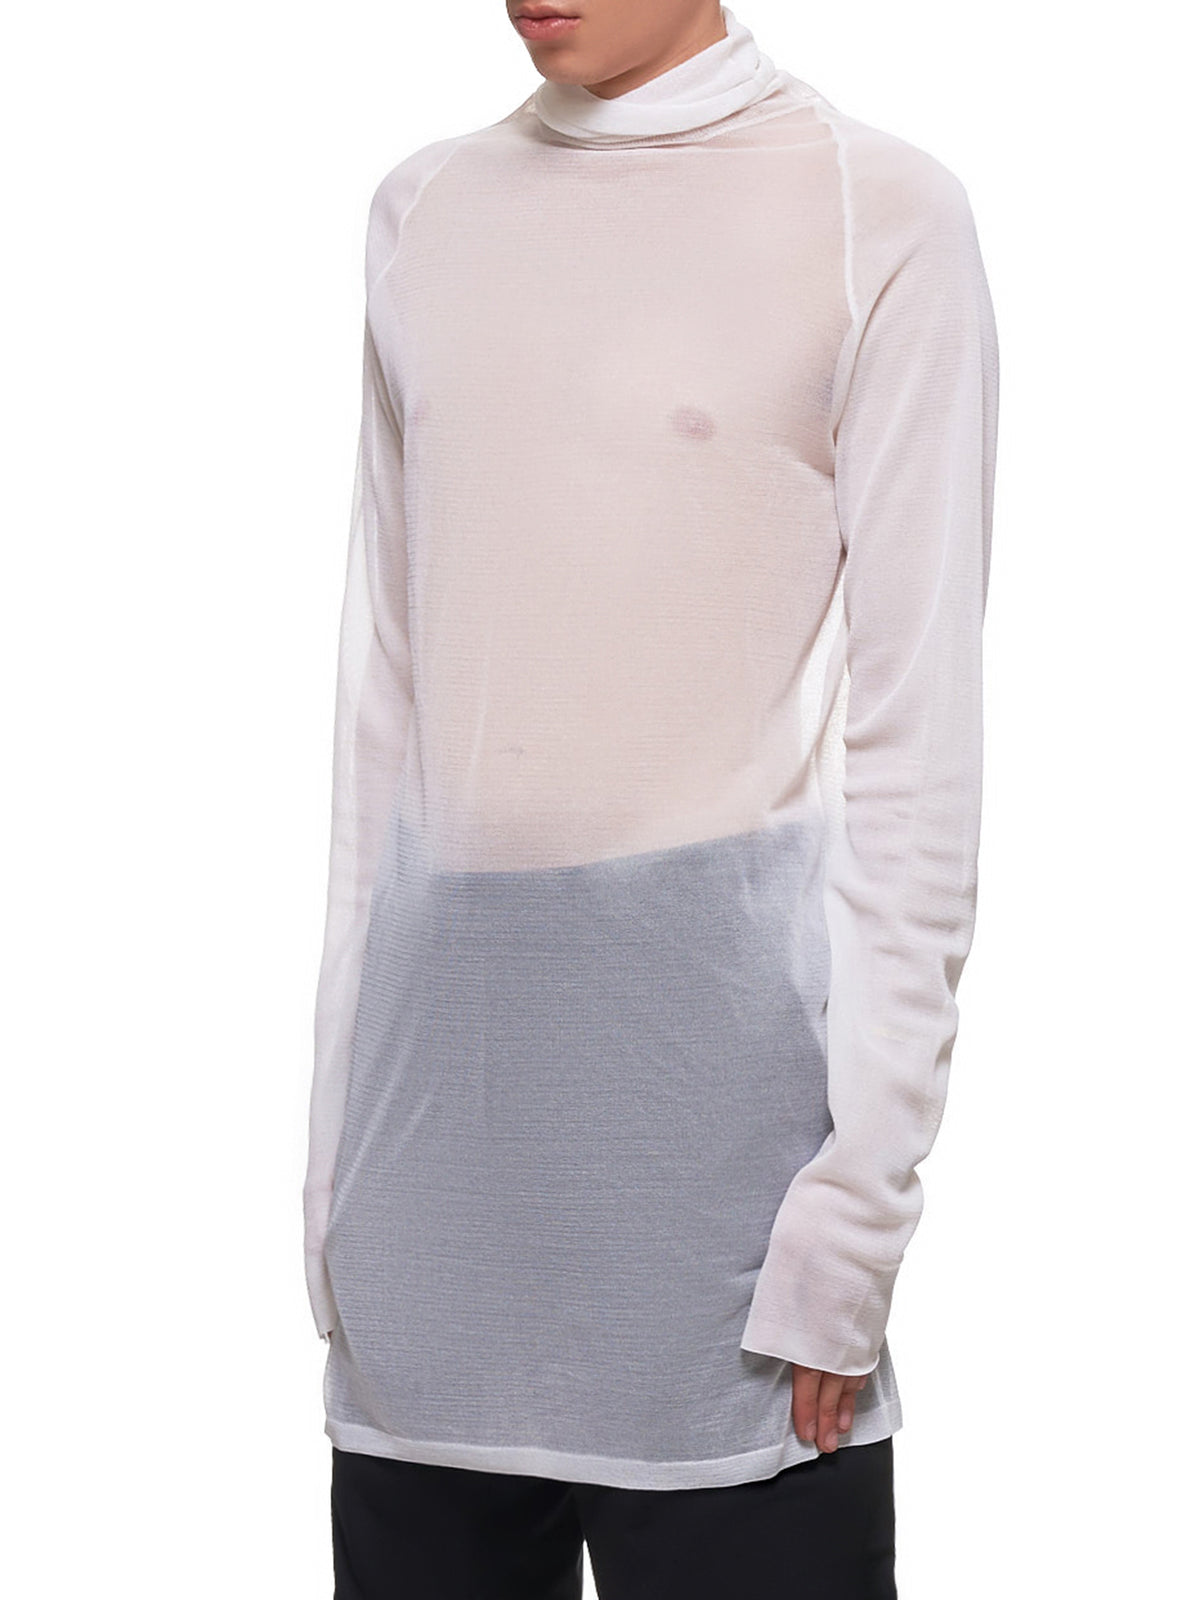 Transparent Silk Pullover (579881VKAH0-IVORY)